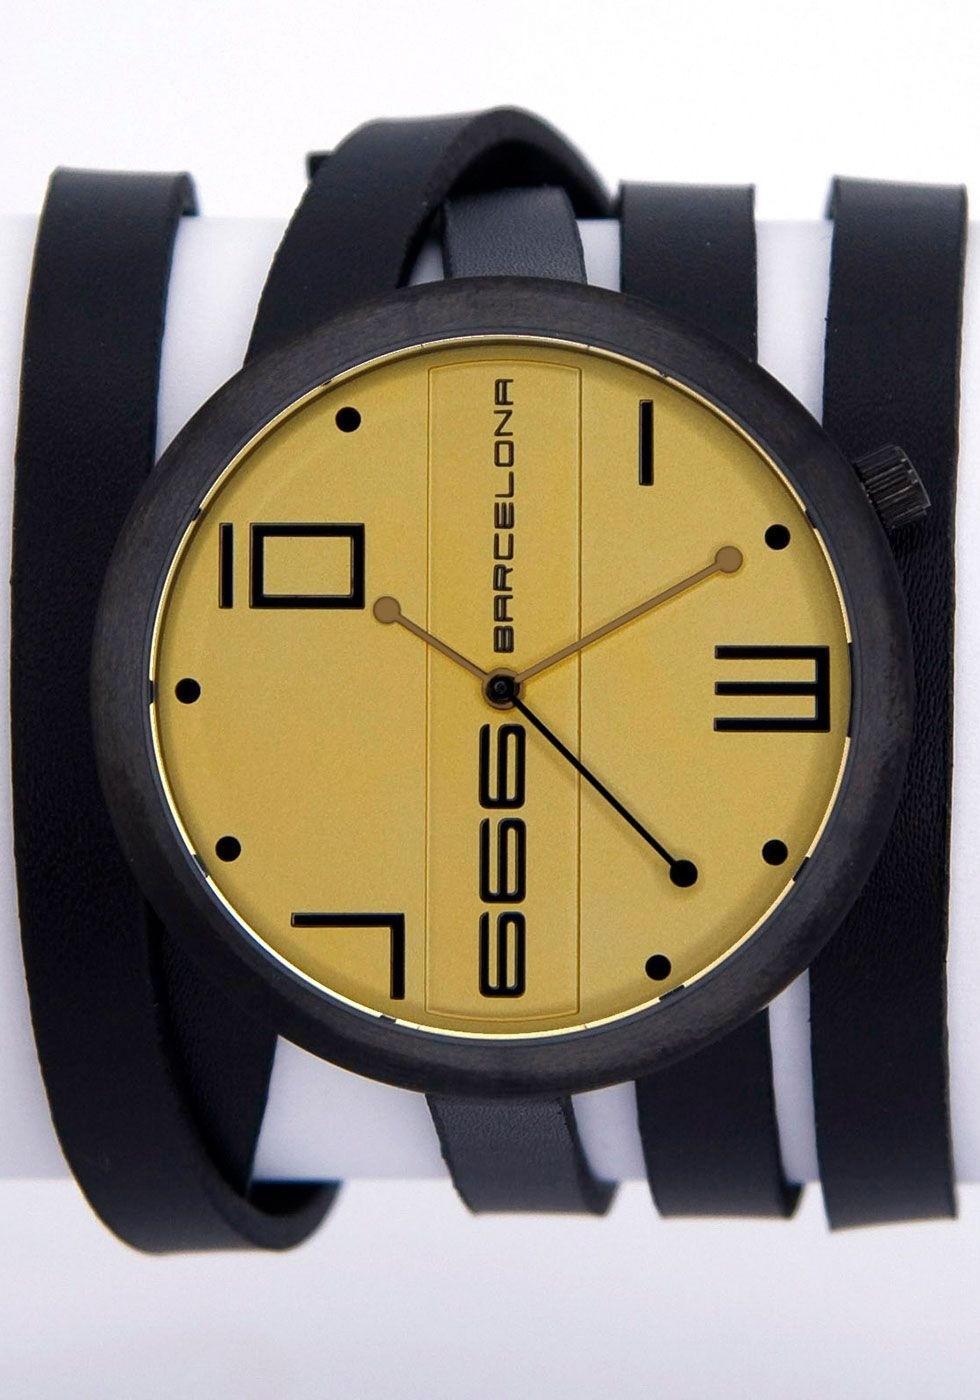 032f4b28d7d0 666 Barcelona Champagne Watch 666-175 The